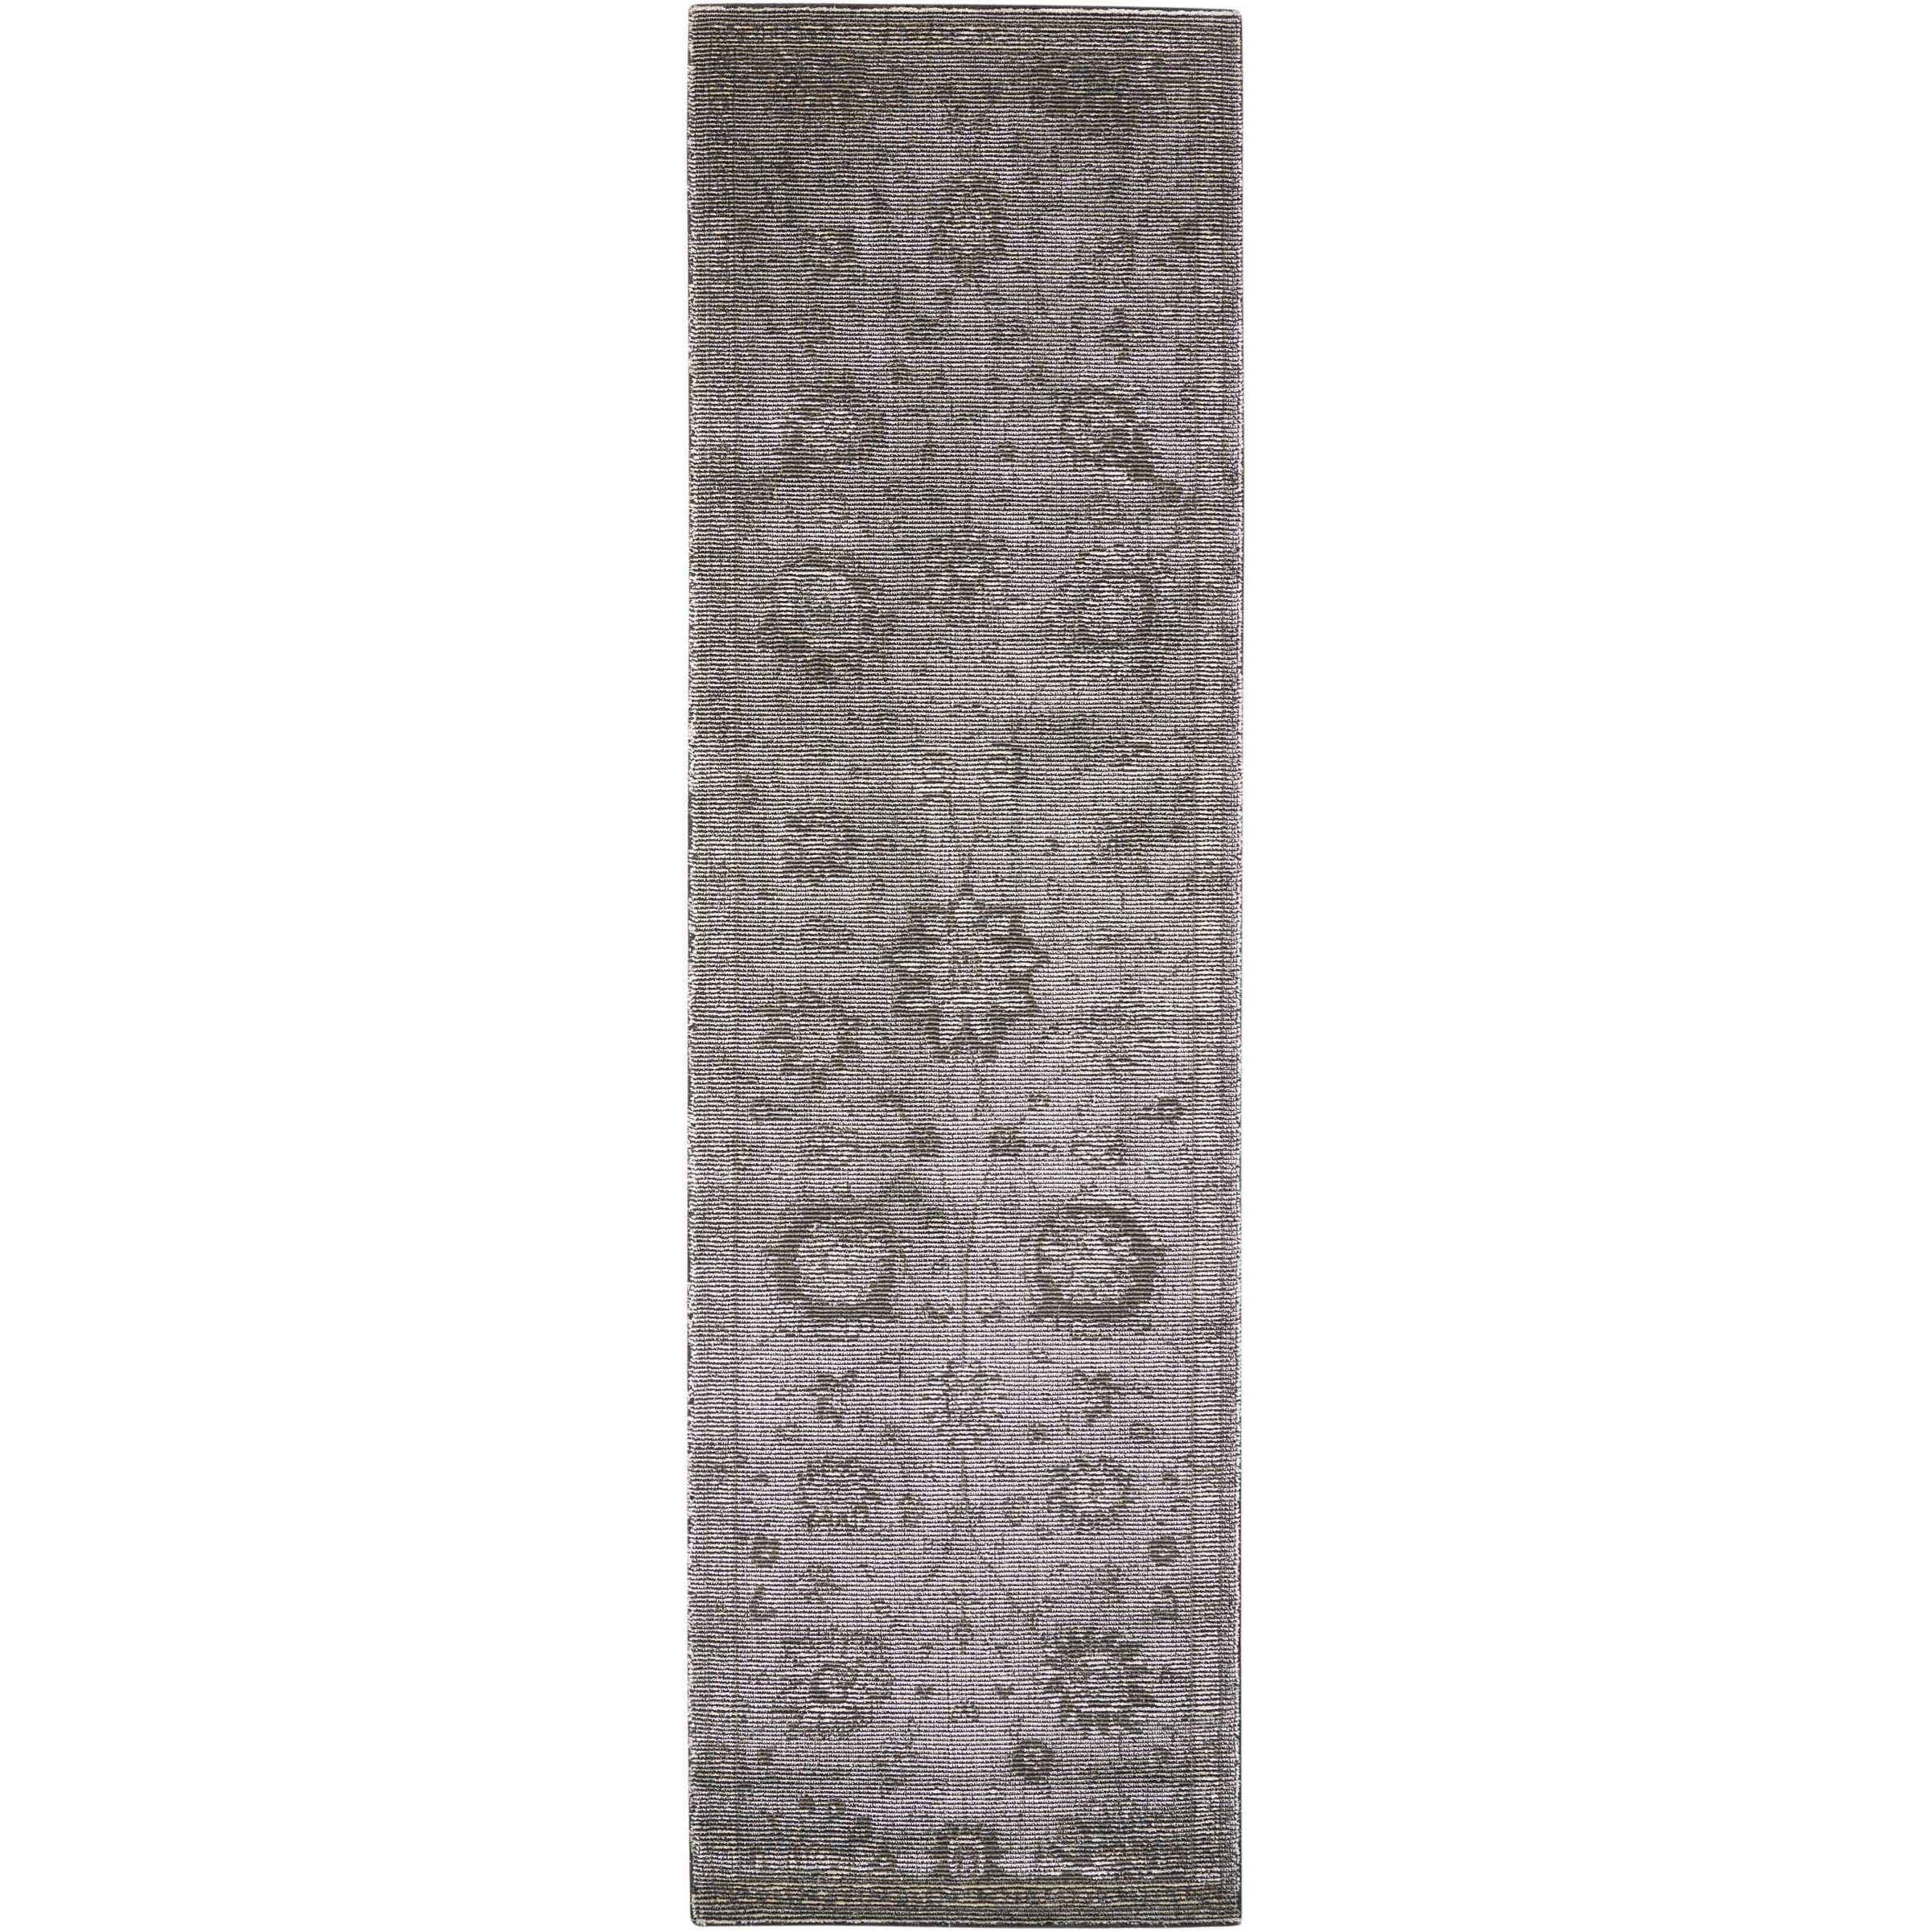 """Luminance 2'3"""" x 8' Graphite Runner Rug by Nourison at Home Collections Furniture"""